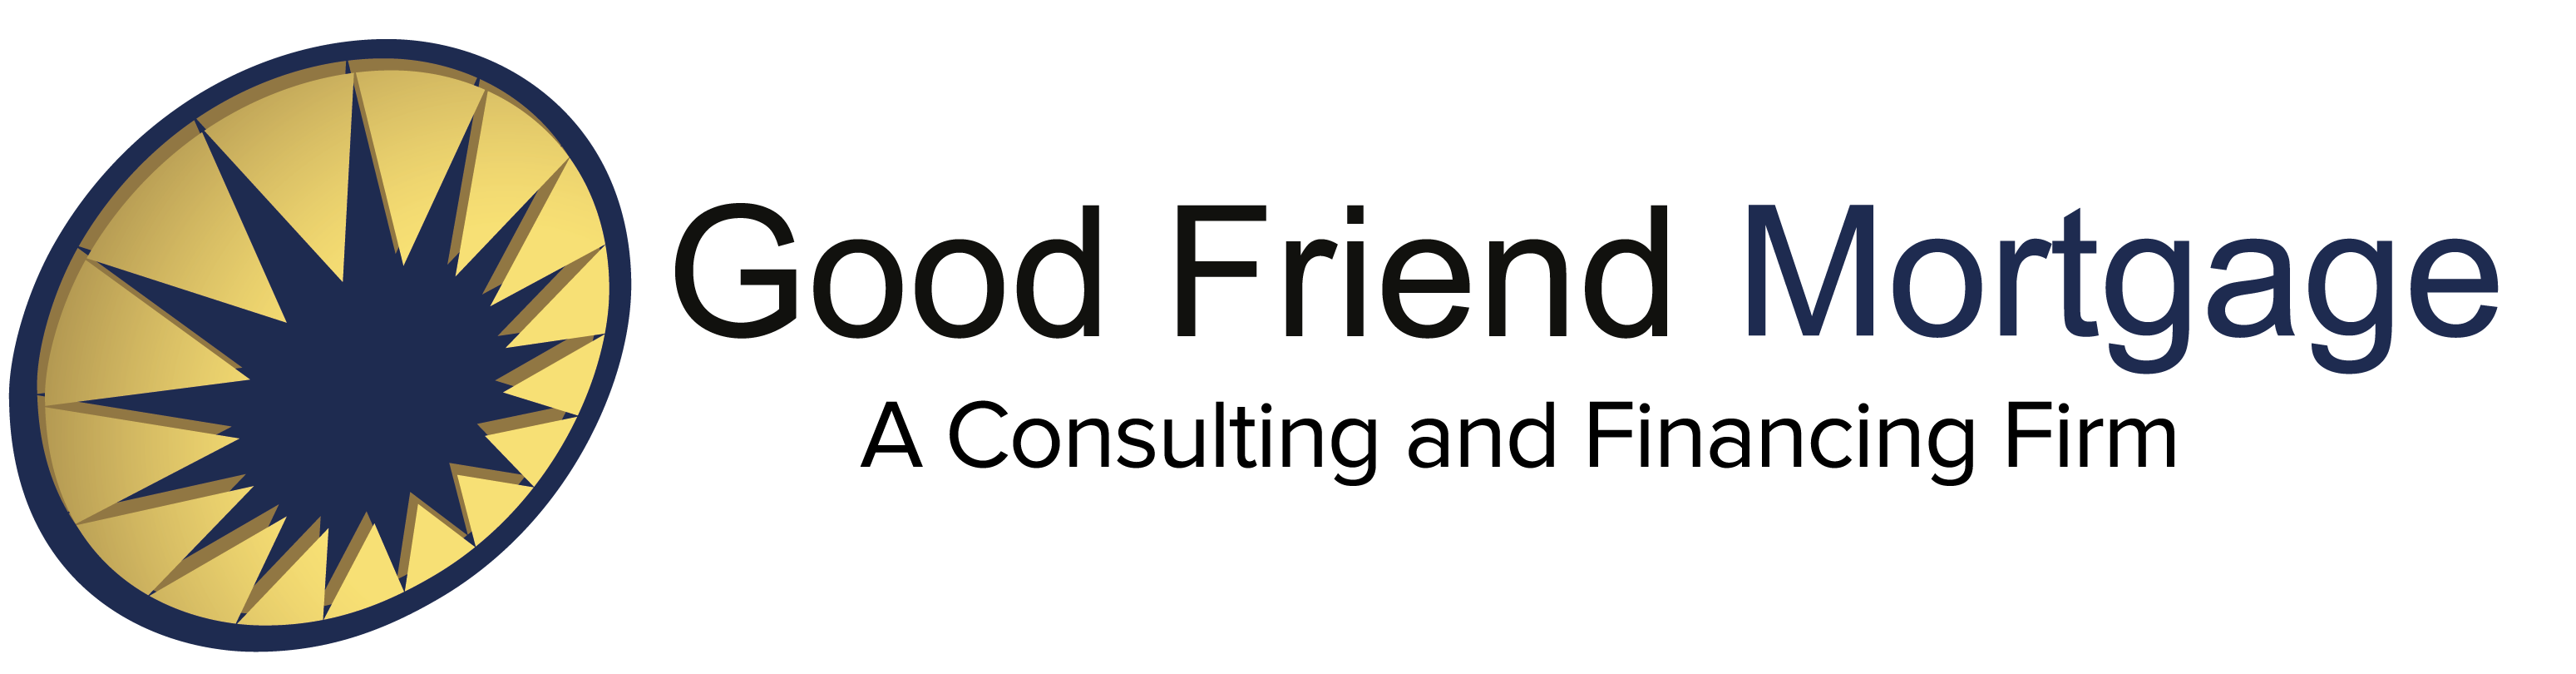 Good Friend Mortgage Logo